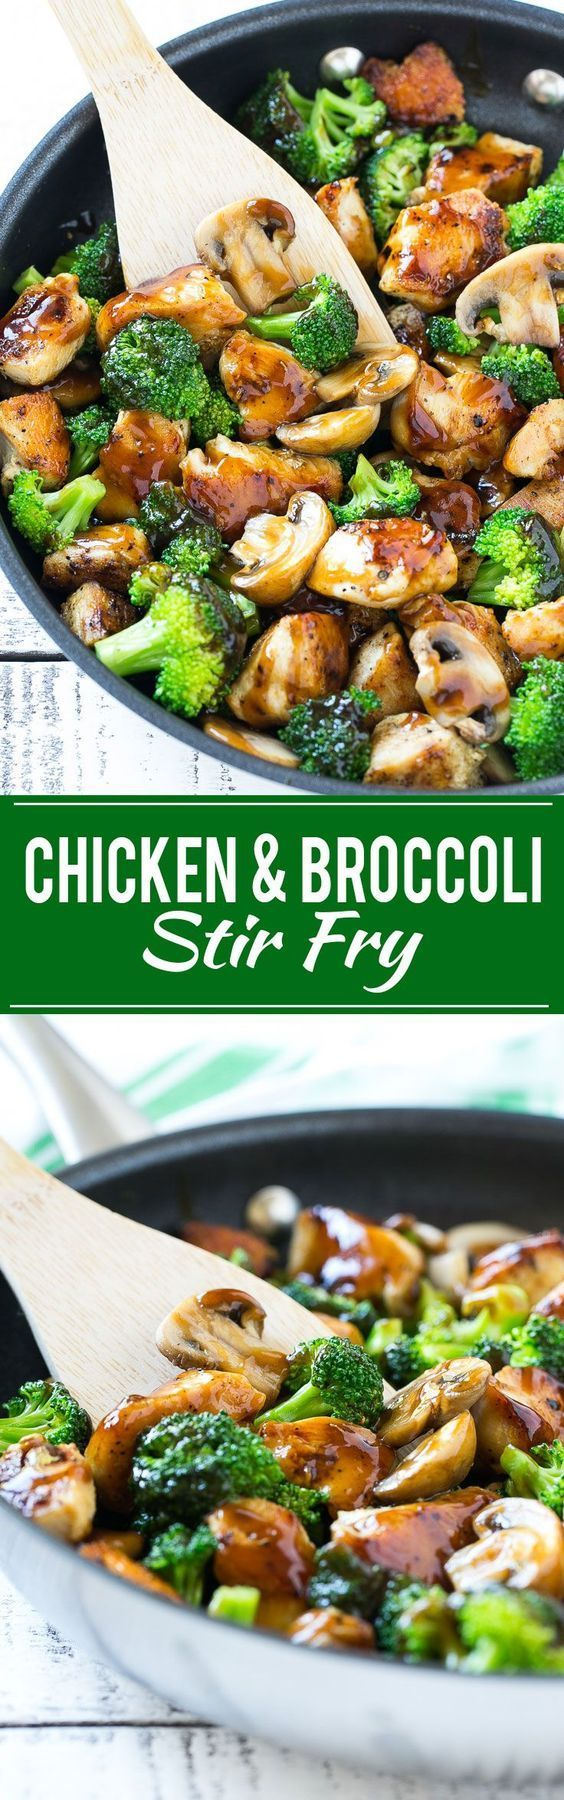 This recipe for chicken and broccoli stir fry is a classic dish of chicken sauteed with fresh broccoli florets and coated in a savory sauce. You can have a healthy and easy dinner on the table in 30 minutes! ad @Kitchen Fair